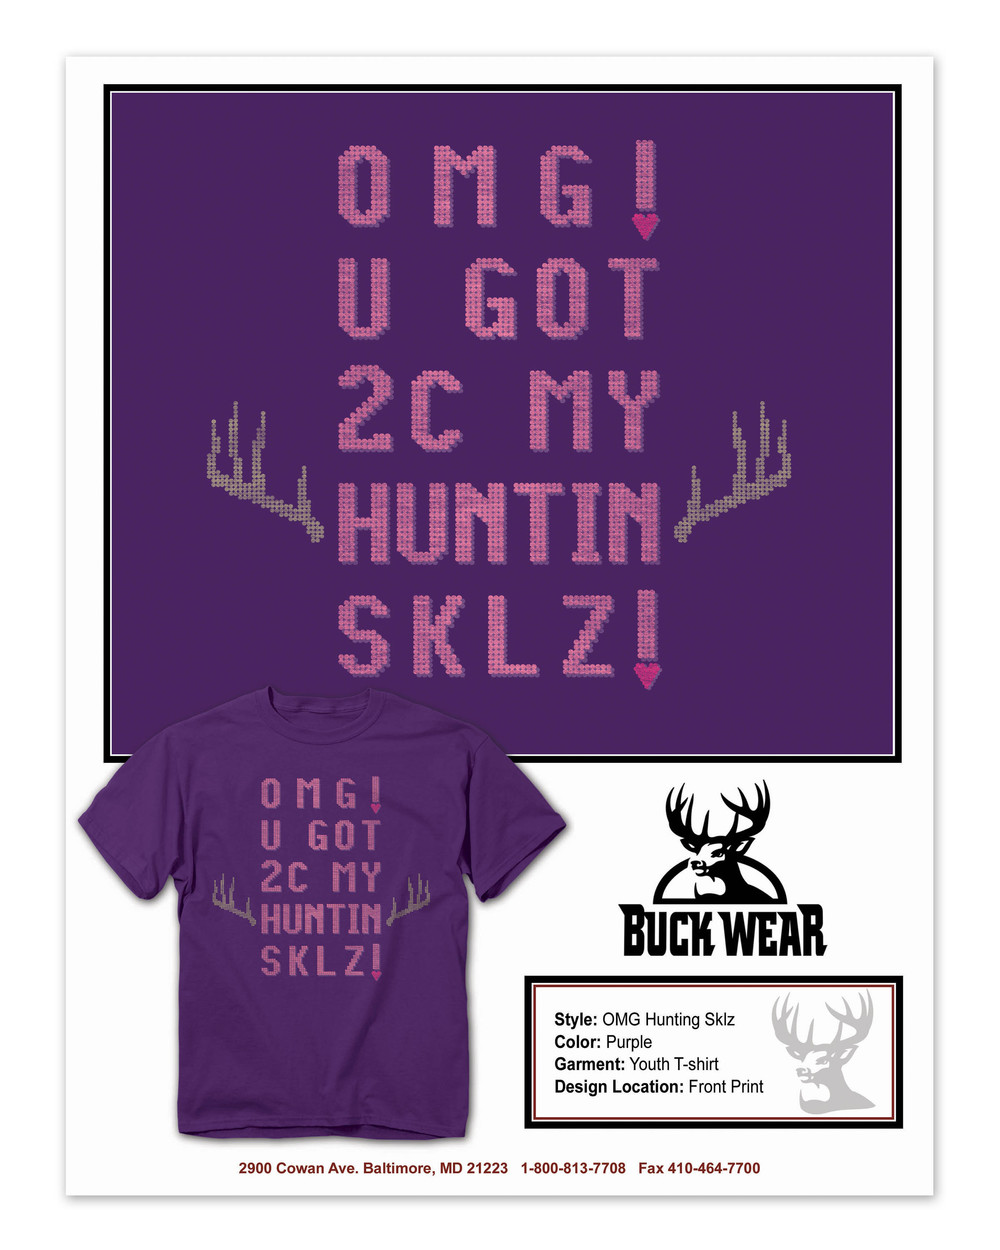 BuckWear Huntin Sklz     Shirt   Design